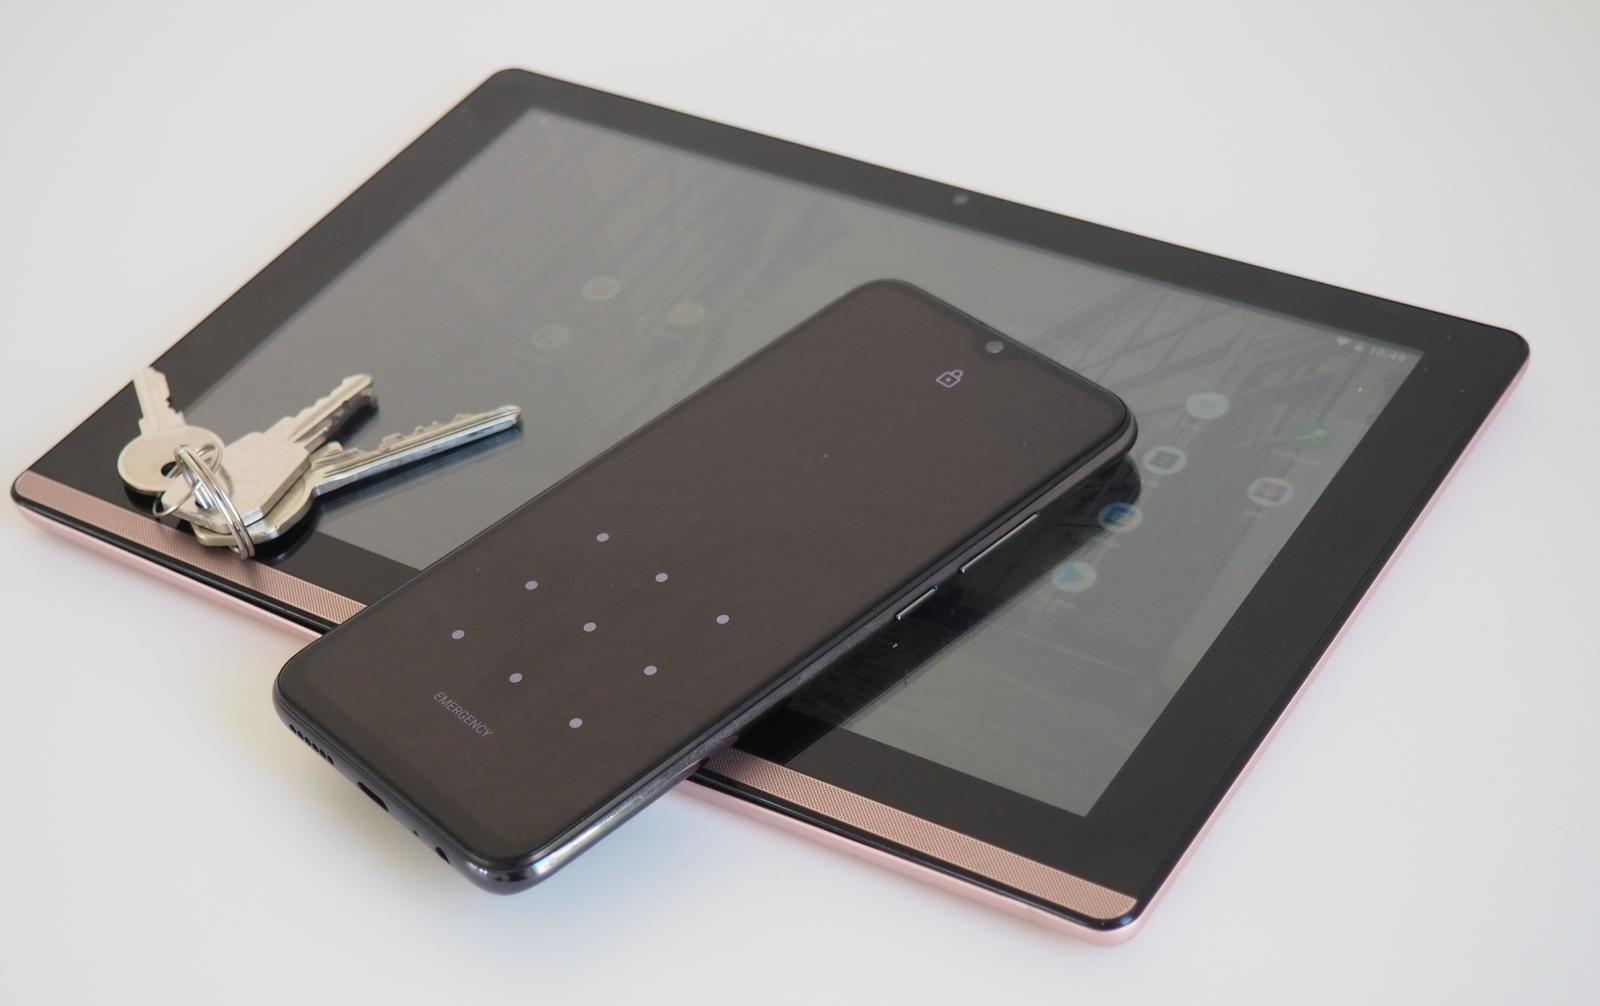 tablet and phone on table, house keys on tablet screen